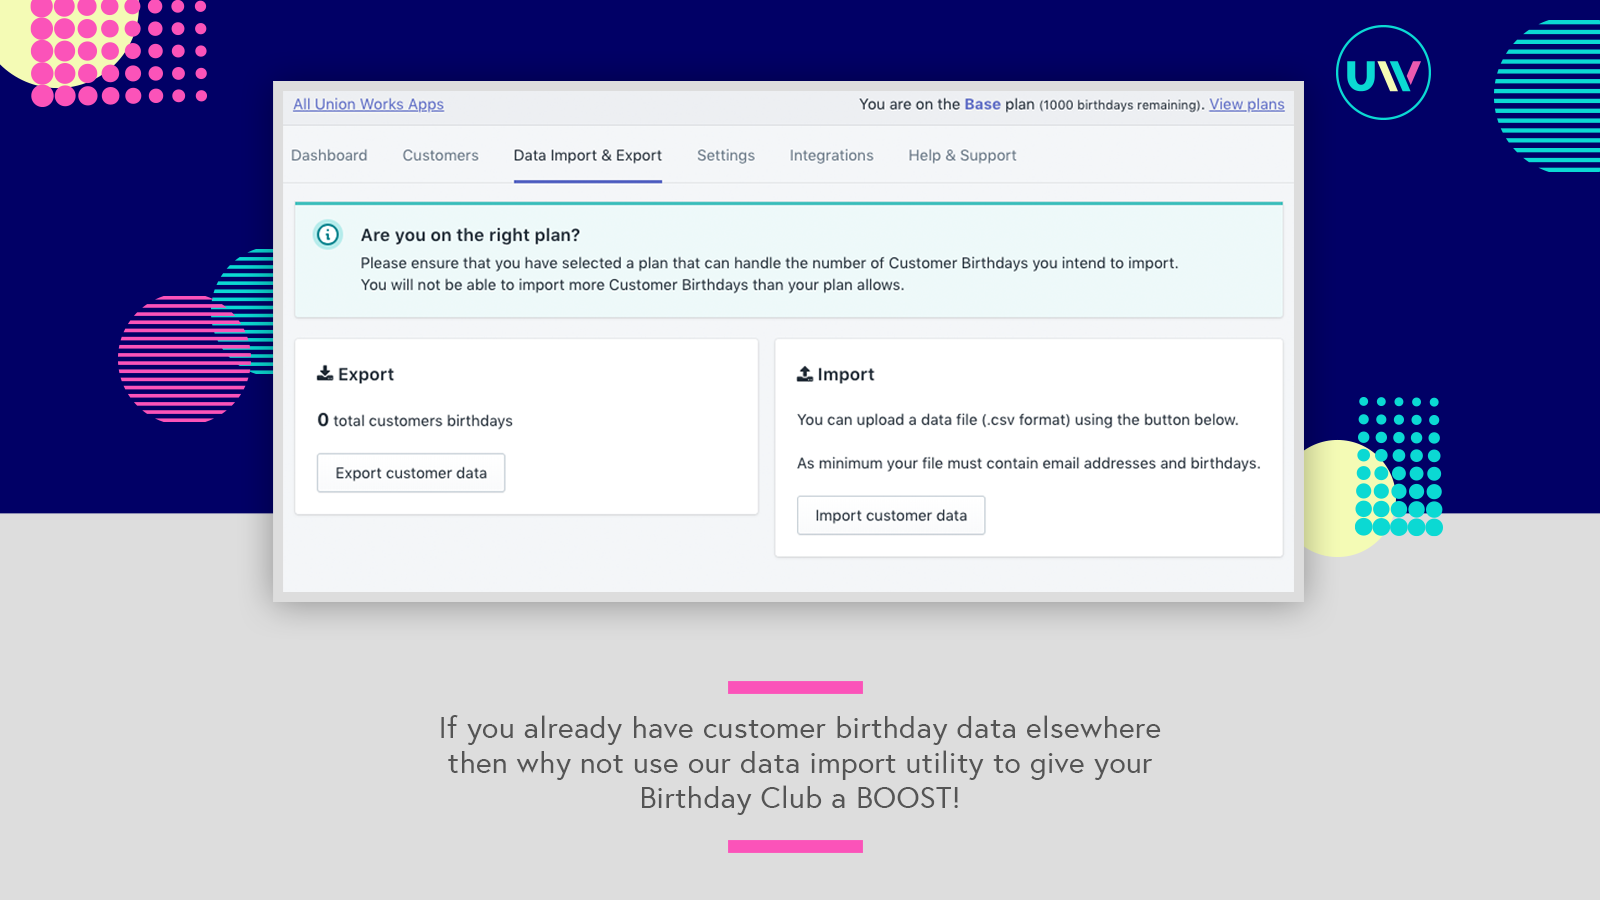 Import birthday data to give your Birthday Club a BOOST